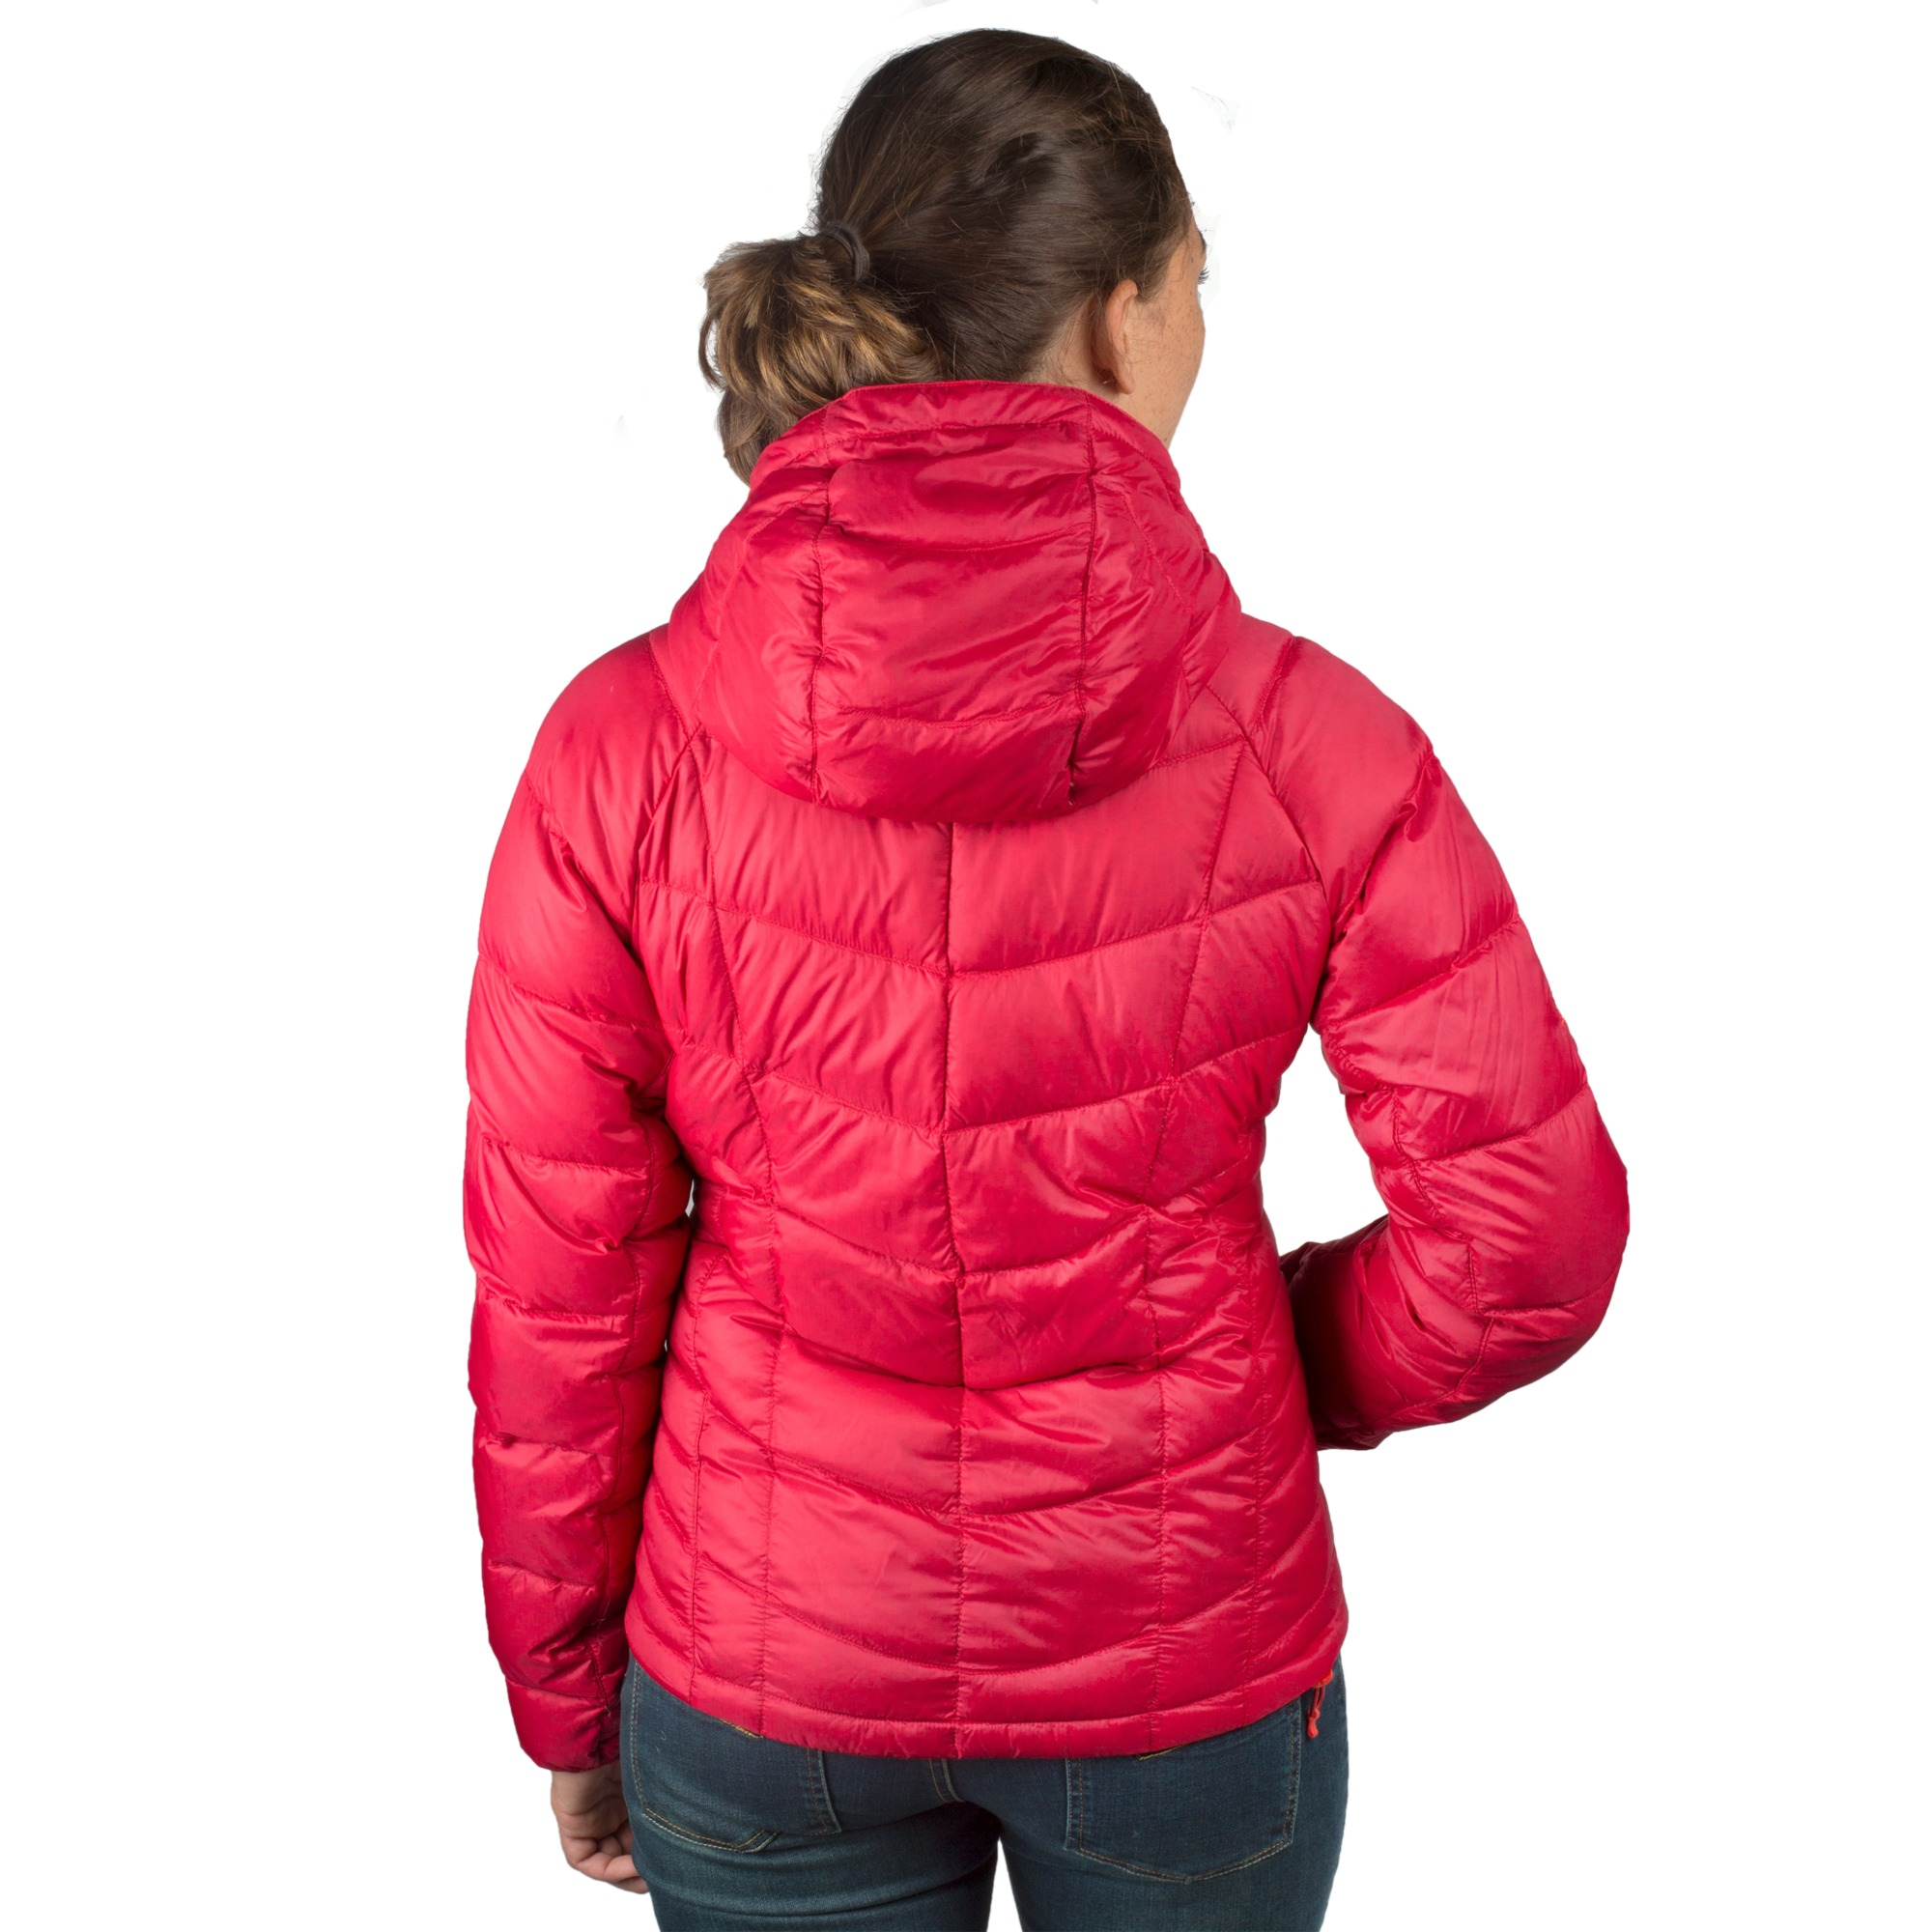 Women's Sonata Hooded Down Jacket - oasis/night | Outdoor Research